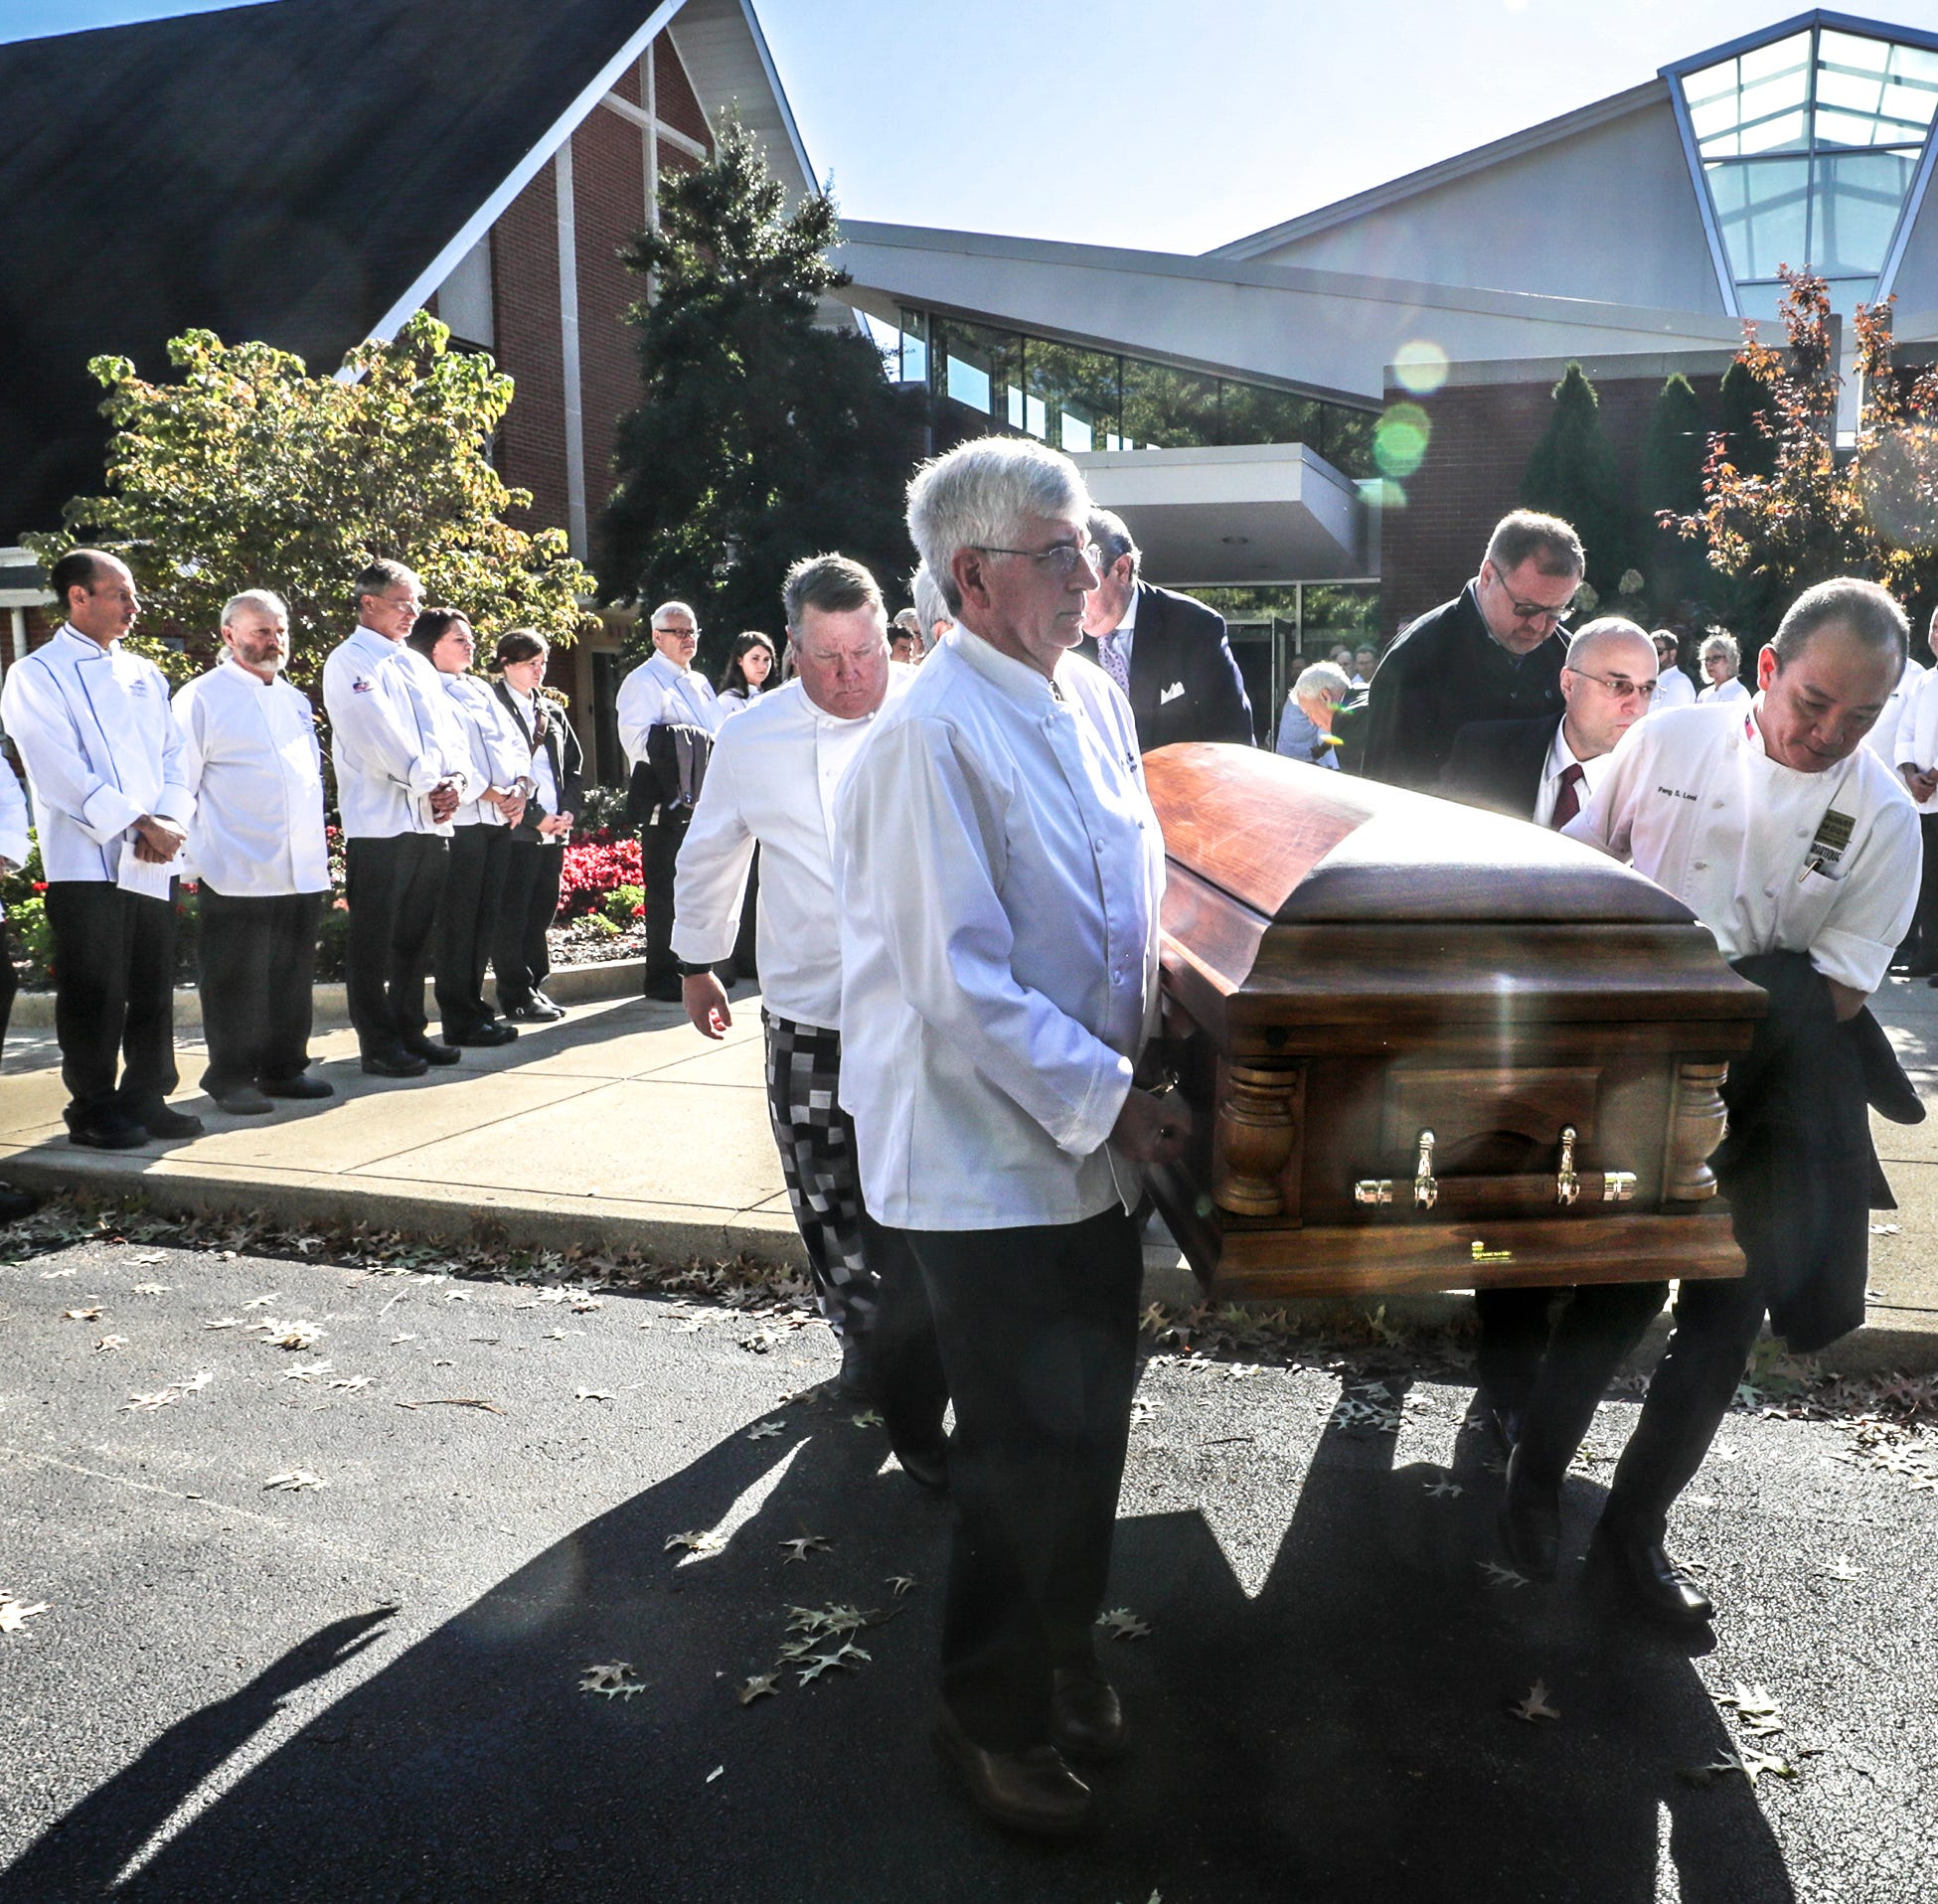 Local chefs serve as pallbearers as they escort the casket of chef Dean Corbett to a waiting hearse after funeral services at St. Albert the Great Church on Wednesday morning.  Chefs wearing white coats lined the walkway from the entrance to the church to the hearse. October 17, 2018